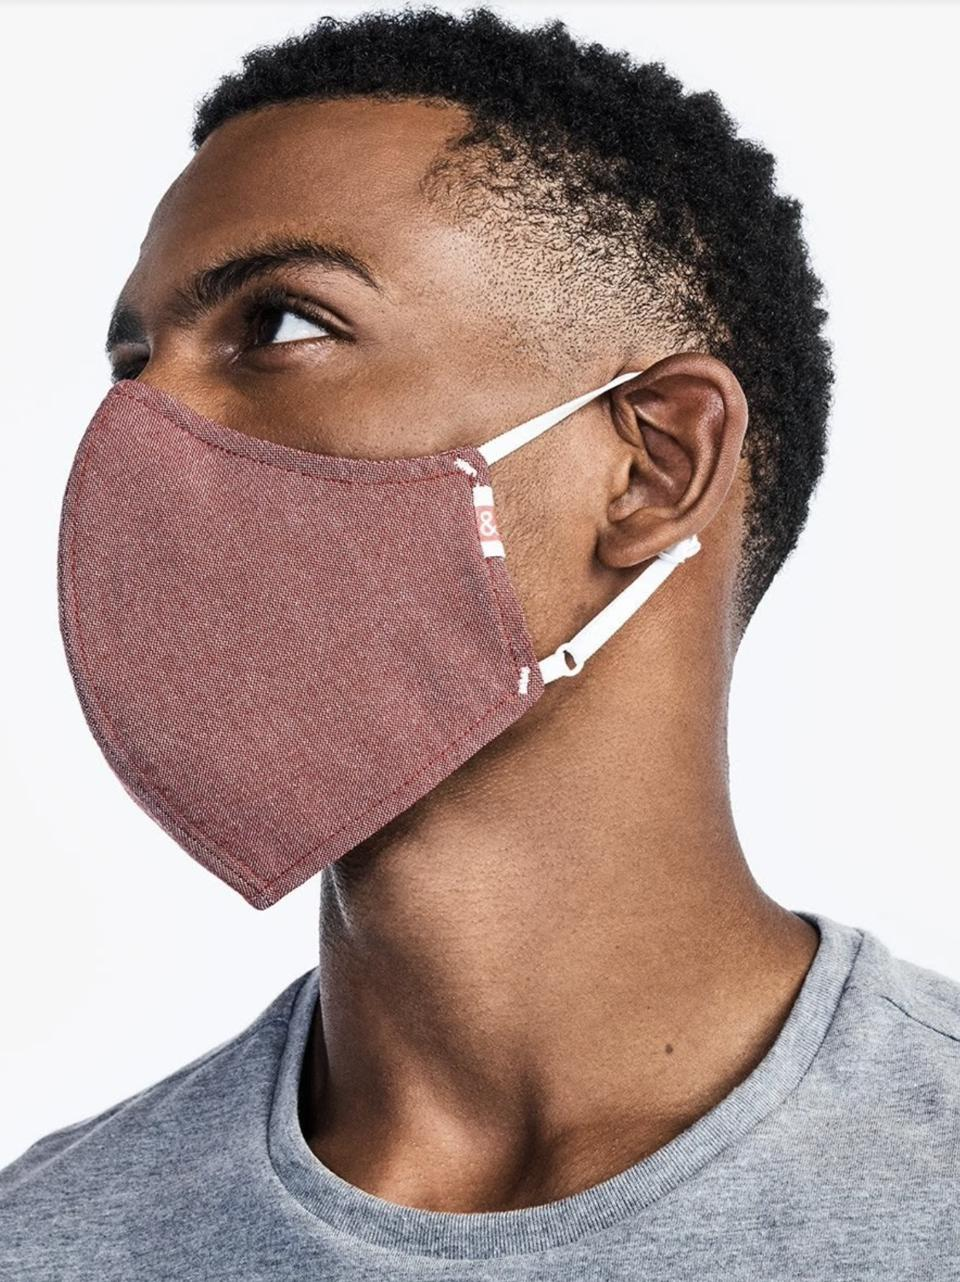 Hedley & Bennett's Wake Up & Fight Mask in Red Oxford